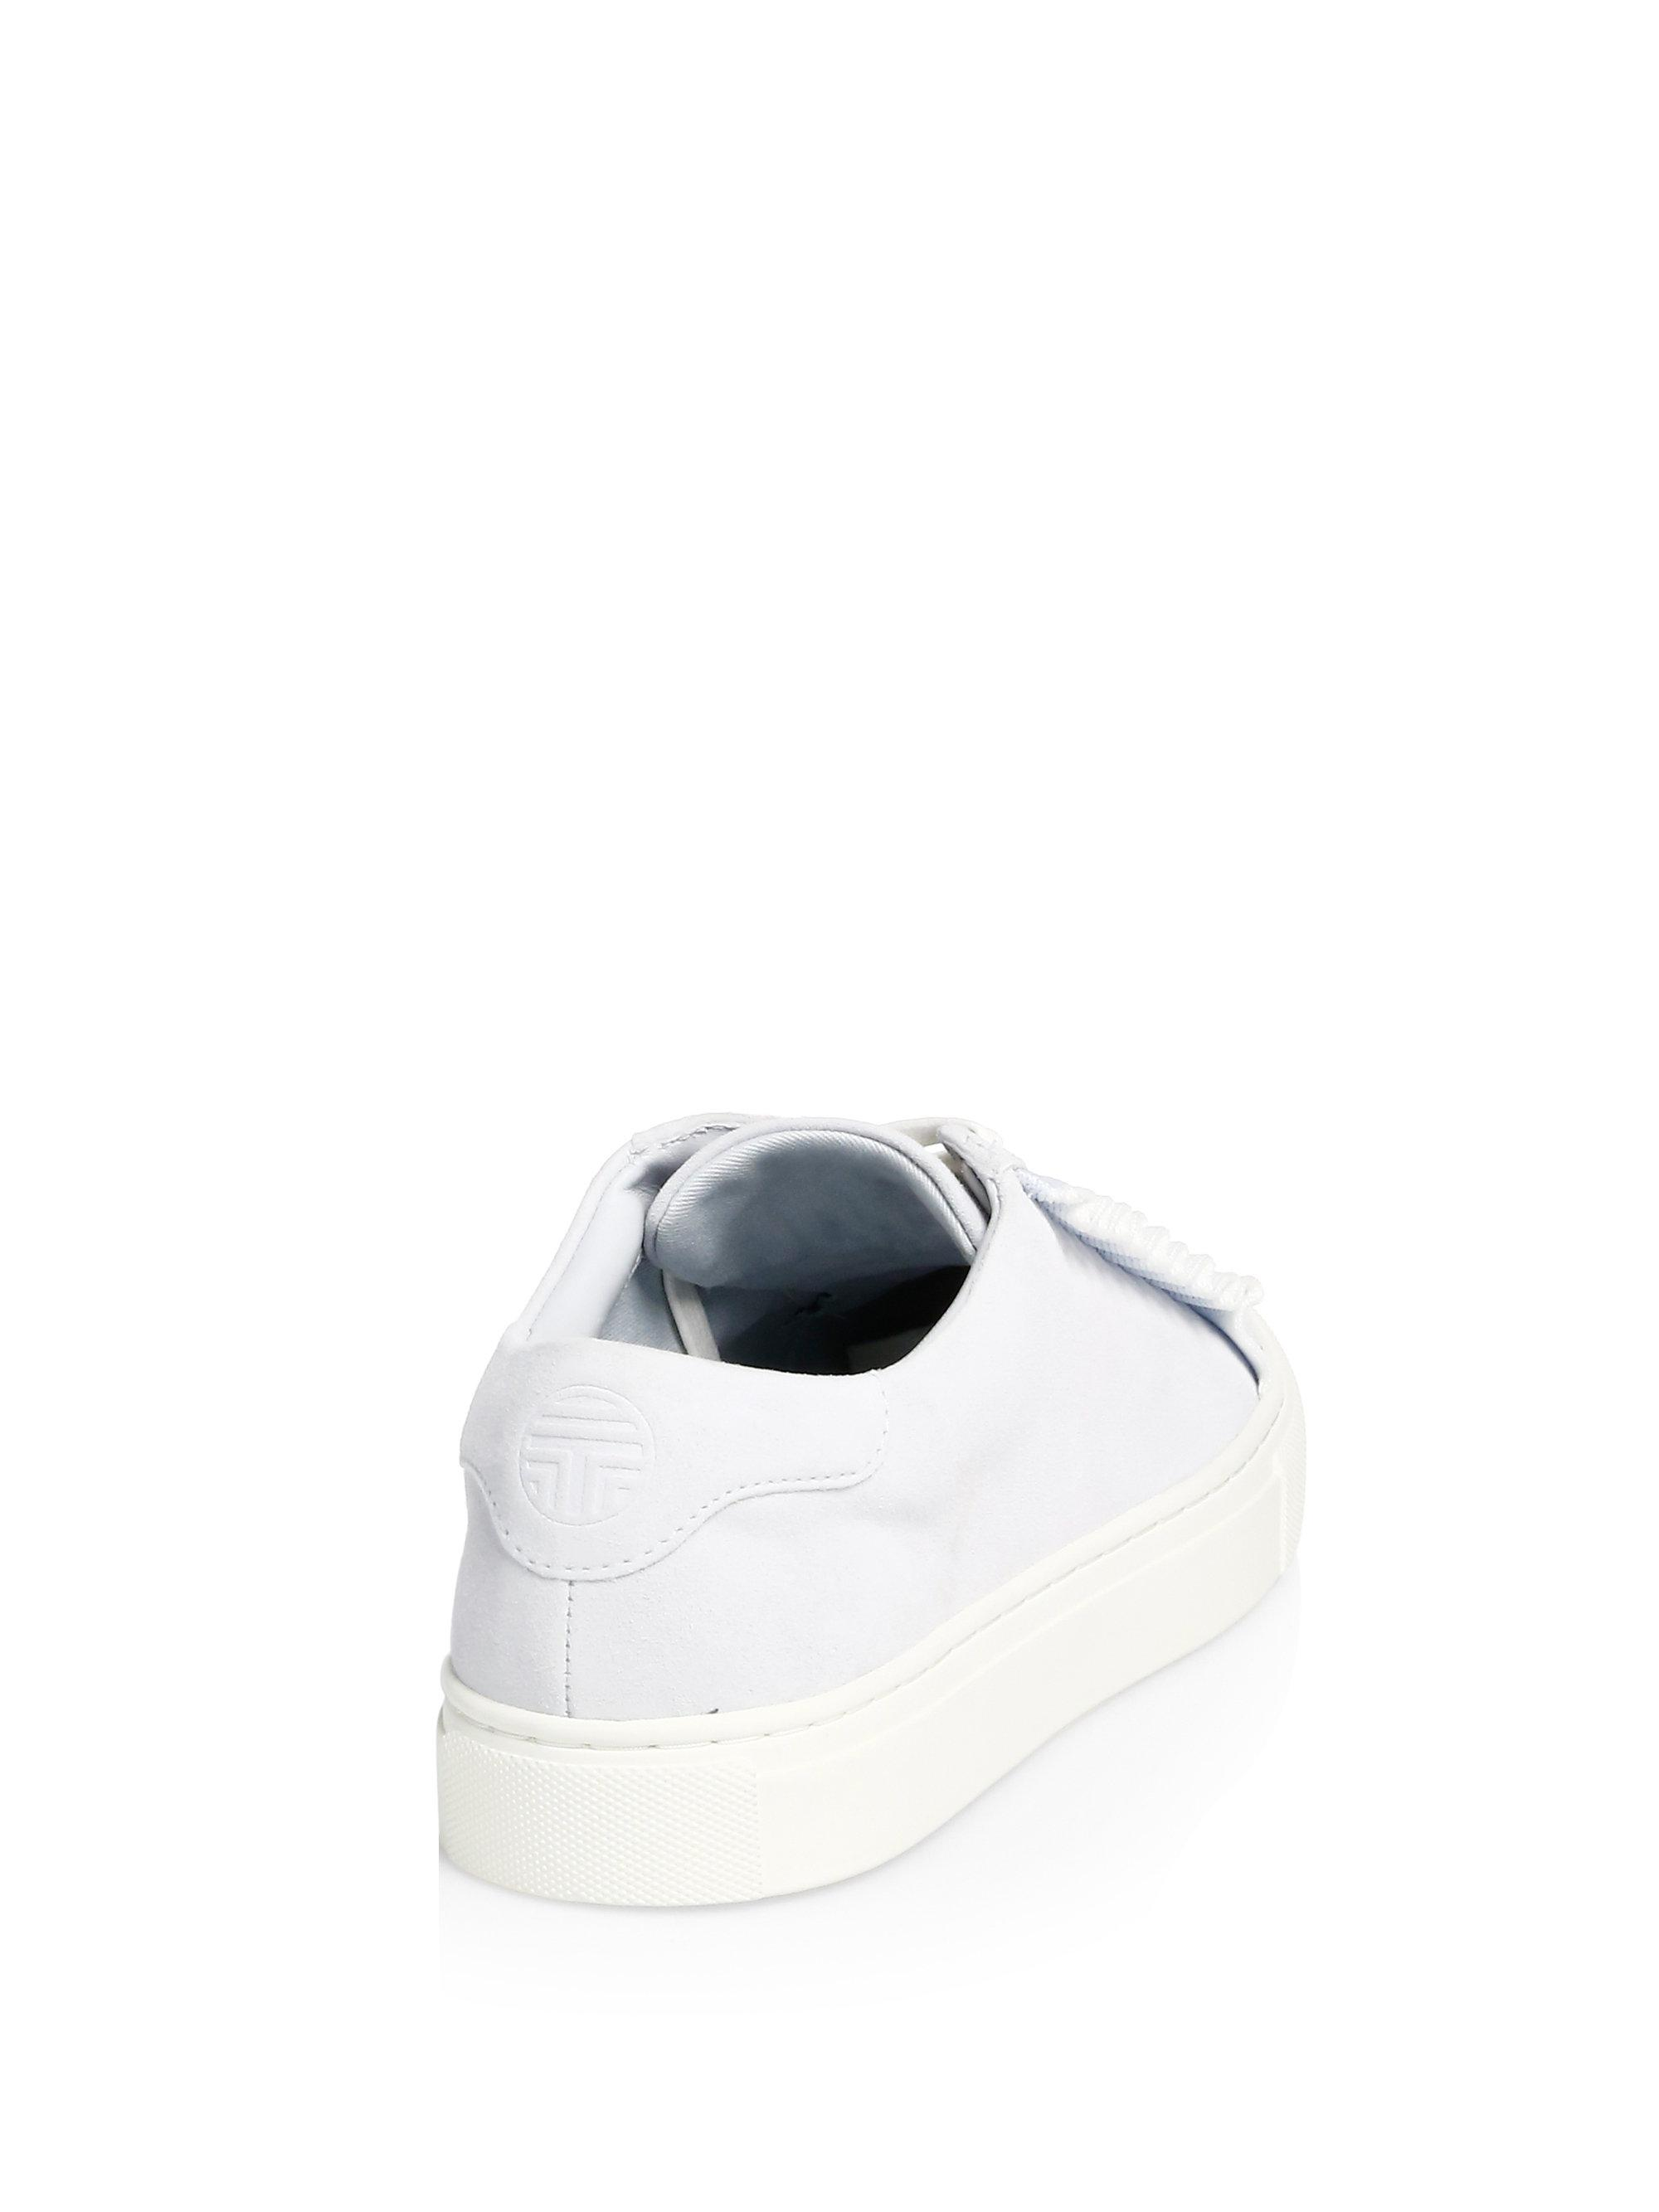 a630b8bec Lyst - Tory Burch Suede Ruffle Low-top Sneakers in Blue